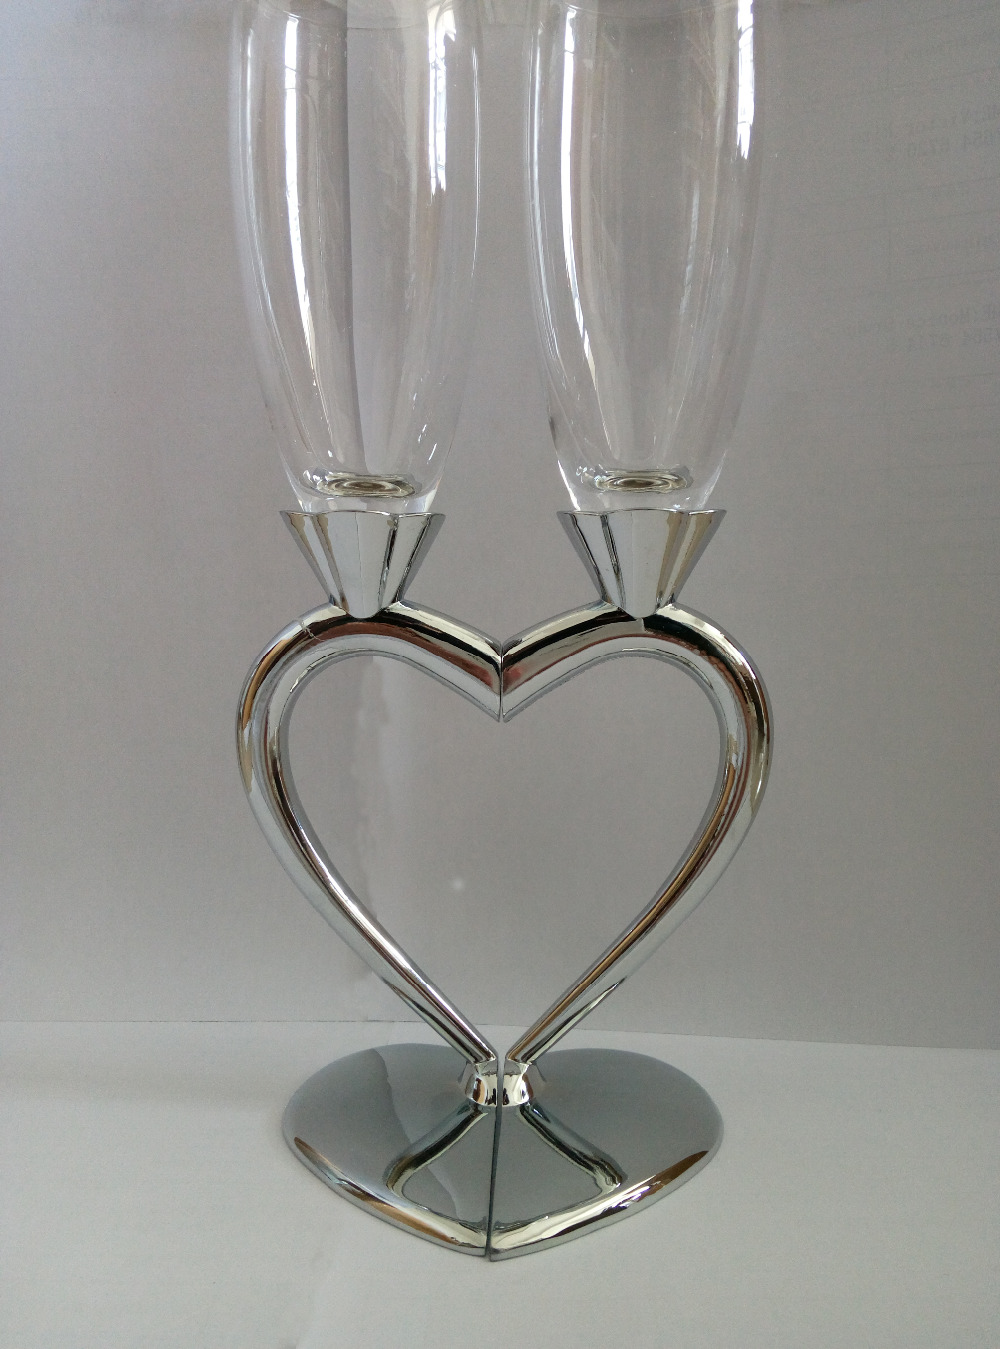 1set heart design silver plated goblet wedding toasting. Black Bedroom Furniture Sets. Home Design Ideas